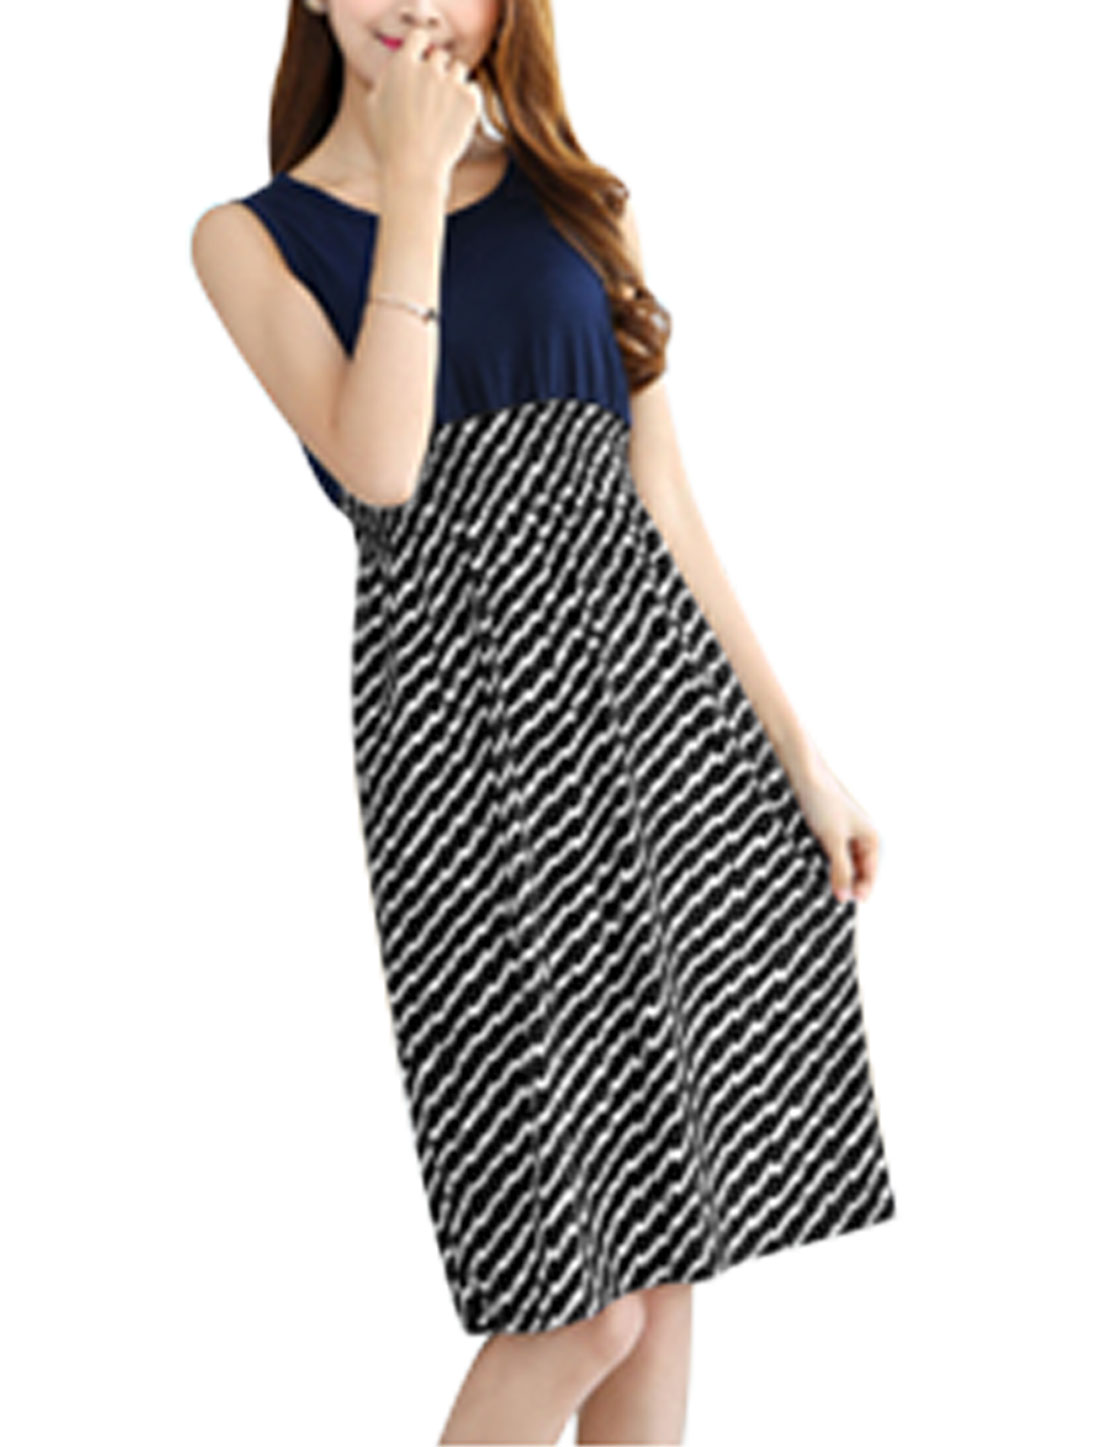 Woman Sawtooth Pattern Round Neck Sleeveless Dress Black White XS